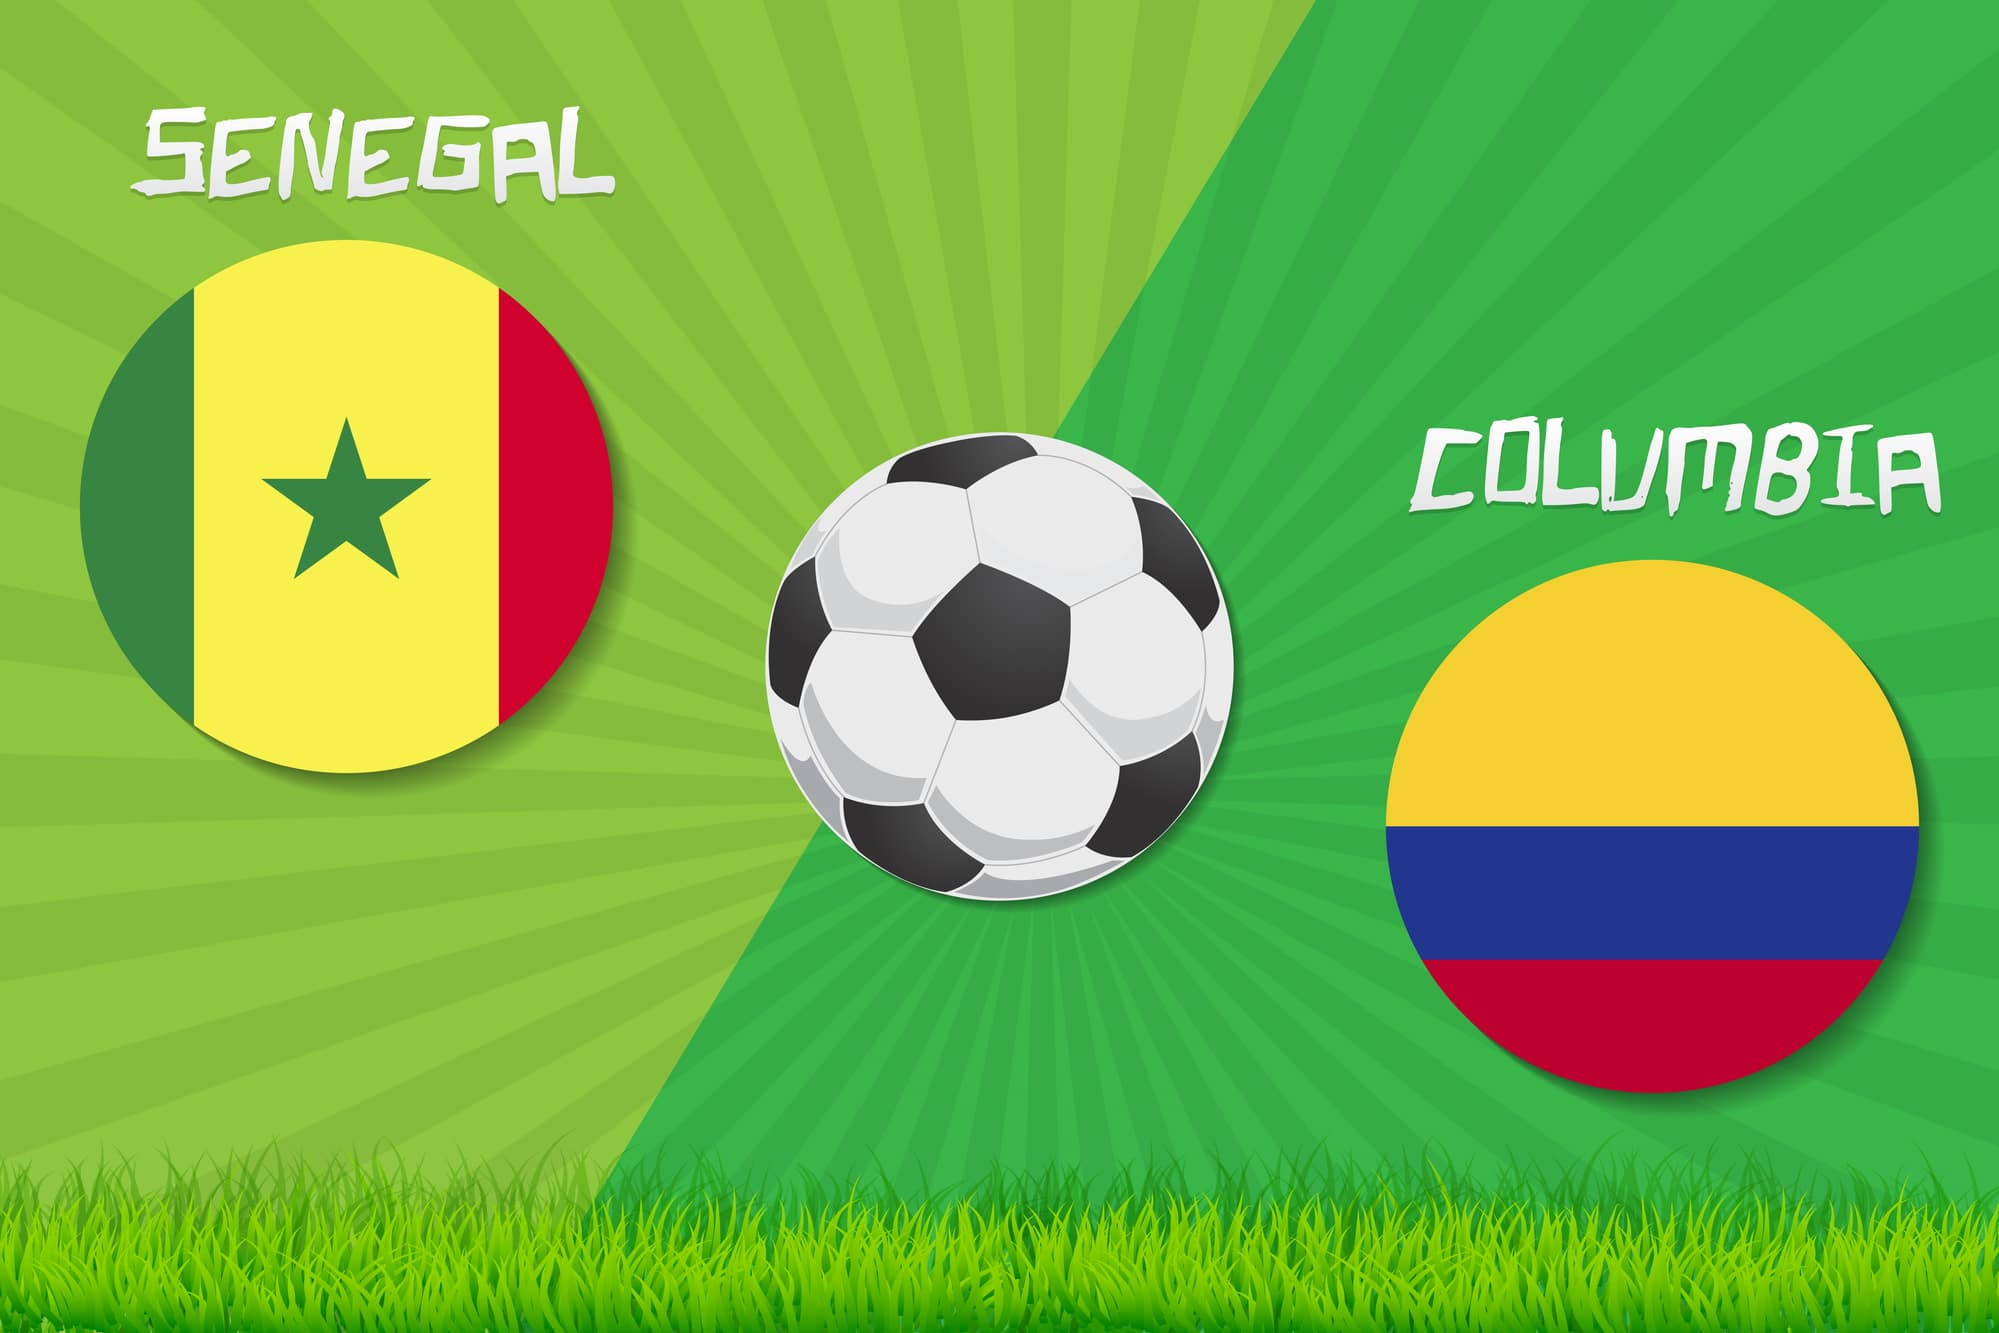 Colombia 1, Senegal 0